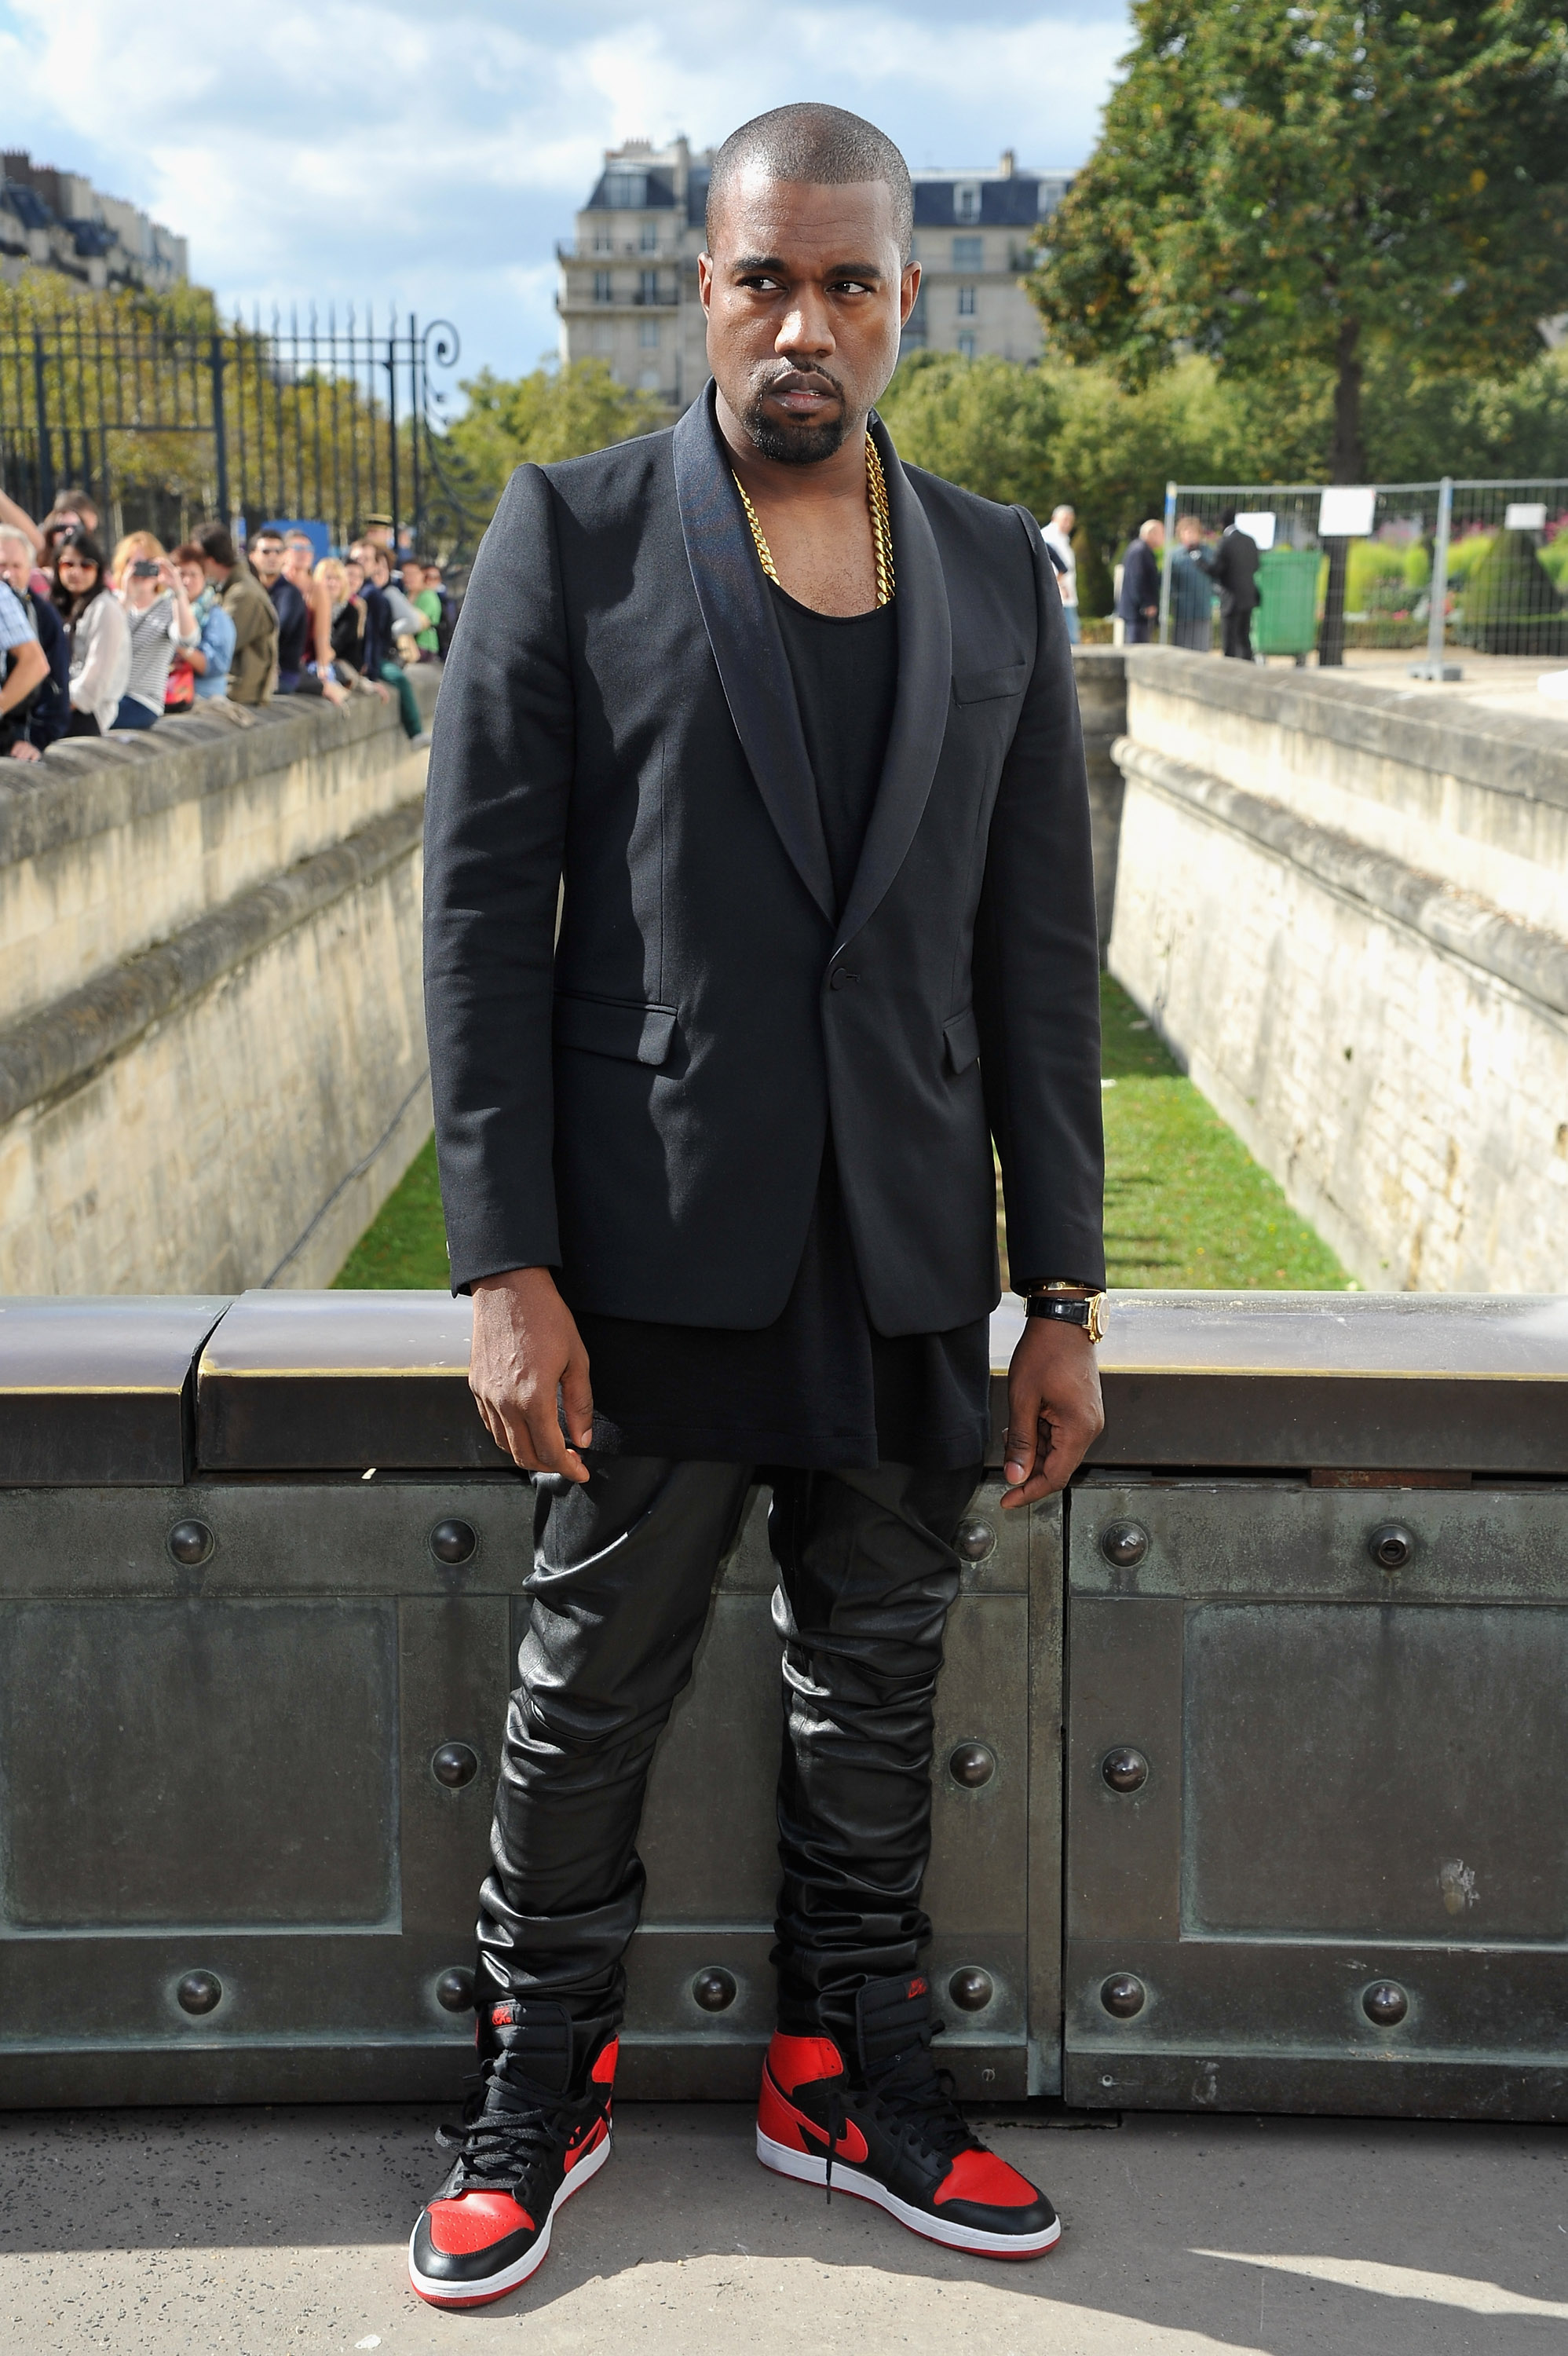 Although he isn't showing his own collection this season, Kanye West turned up to the Christian Dior show in red Nike Dunks, a sleek black blazer, and black leather pants.